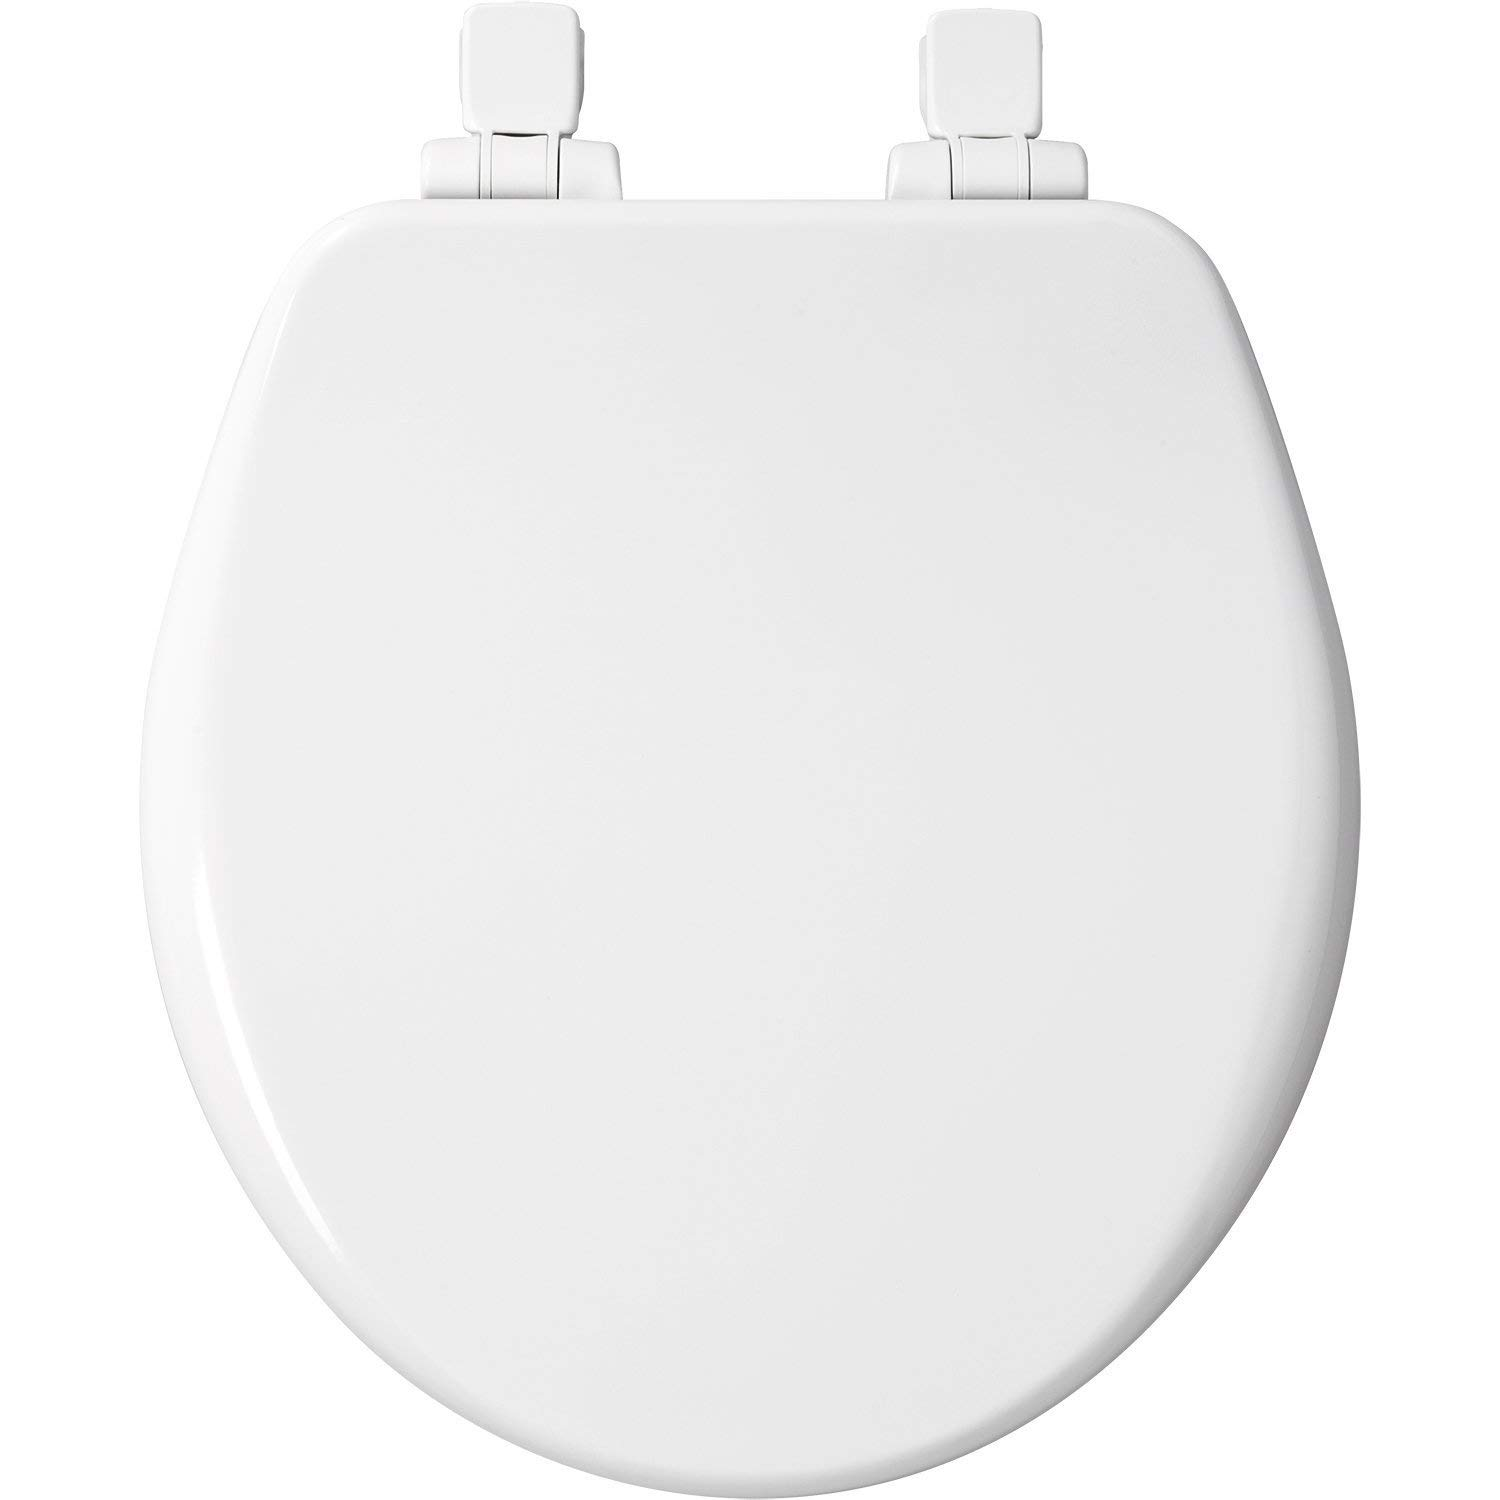 Prime White Molded Wood Slow Close Toilet Seat Caraccident5 Cool Chair Designs And Ideas Caraccident5Info